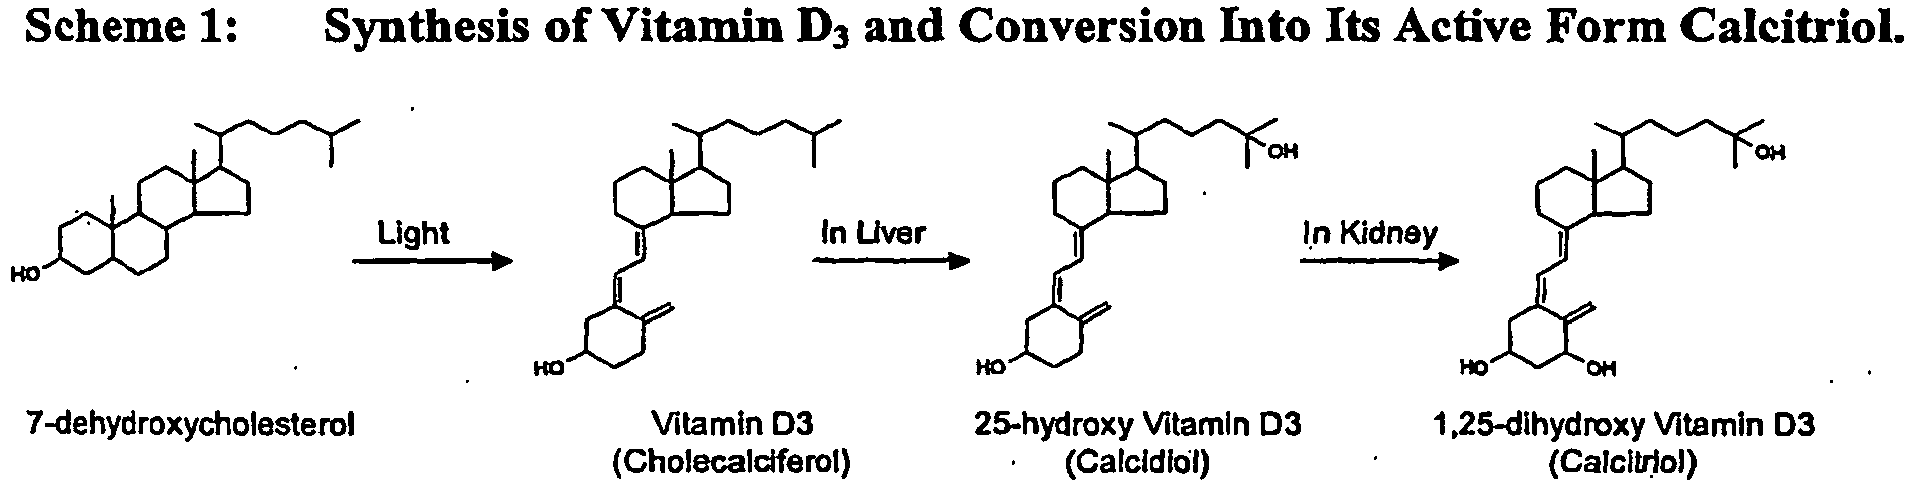 In The Kidney 25 Hydroxy Vitamin D 3 Serves As A Substrate For 1 Alpha Hydroxylase